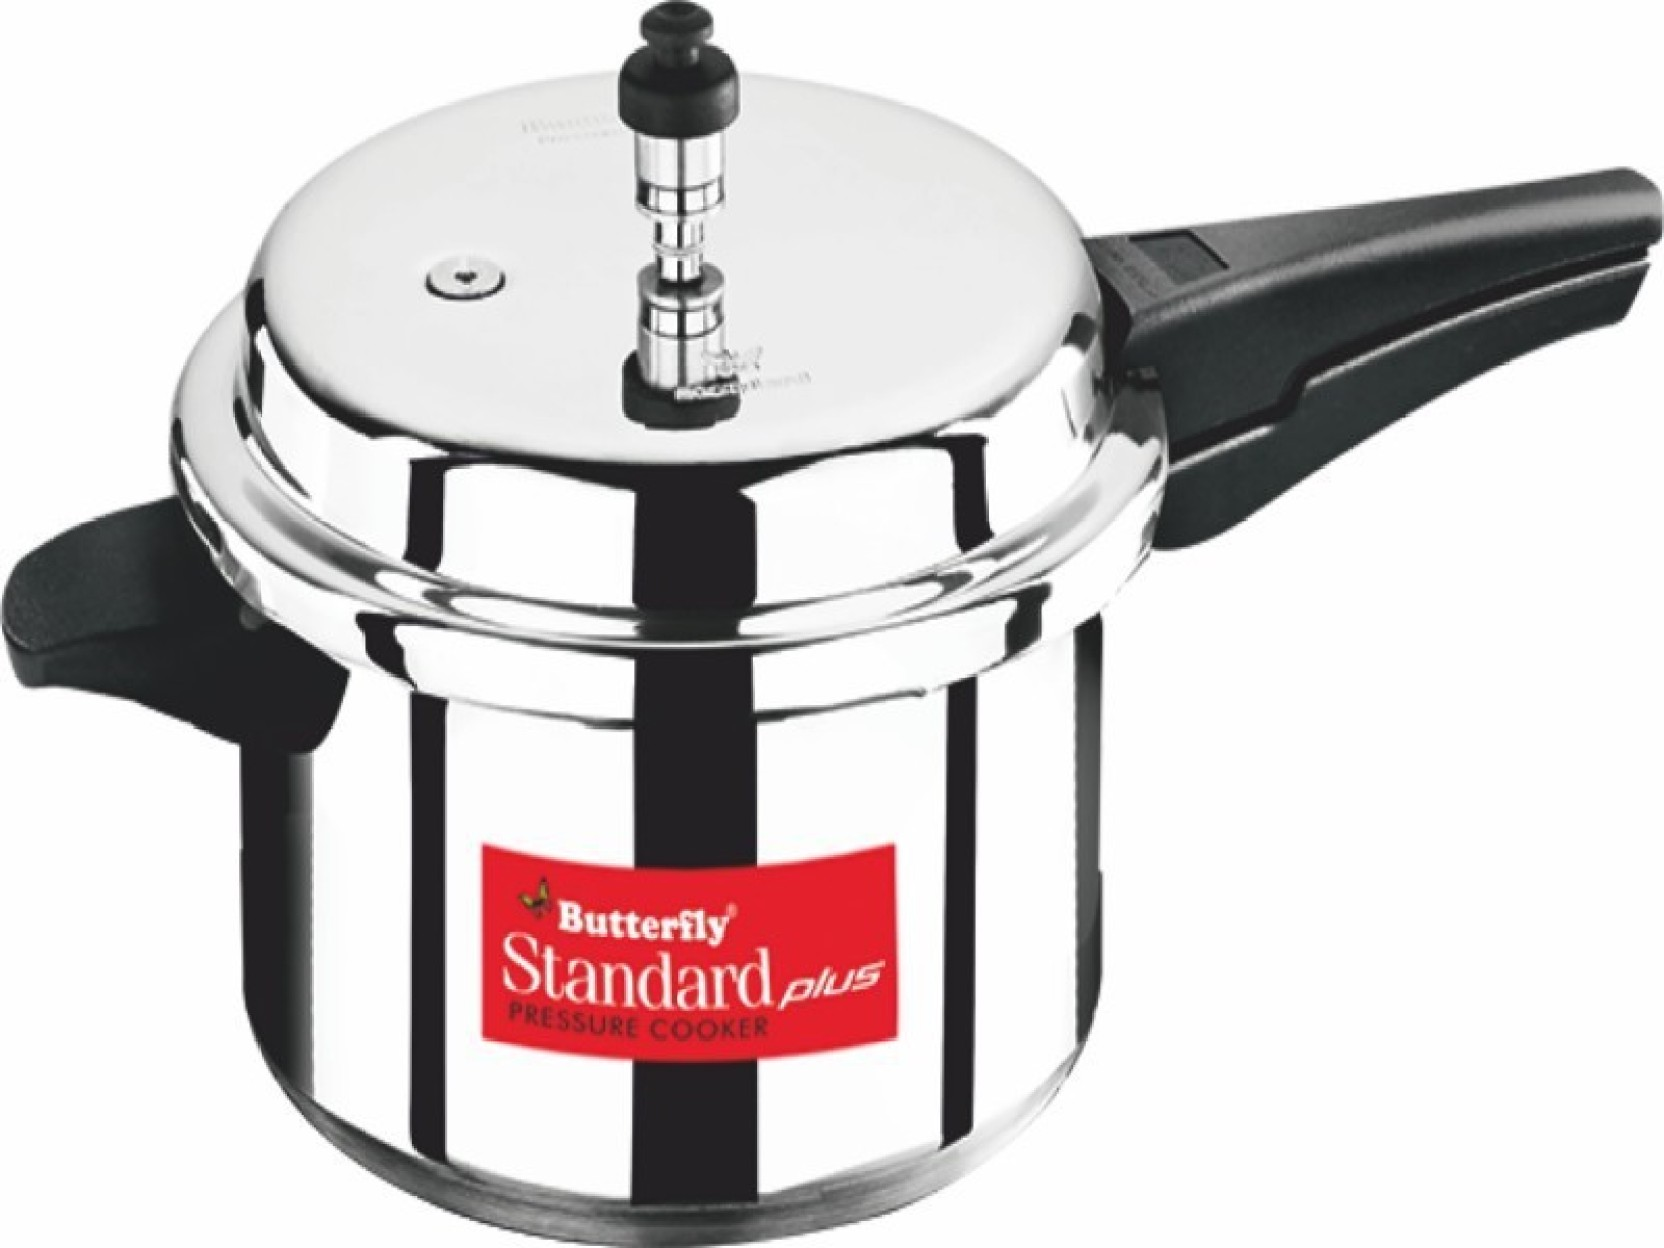 Butterfly 5 L Pressure Cooker With Induction Bottom Price In India Buy Circuit Boardelectric Cookerinduction Home